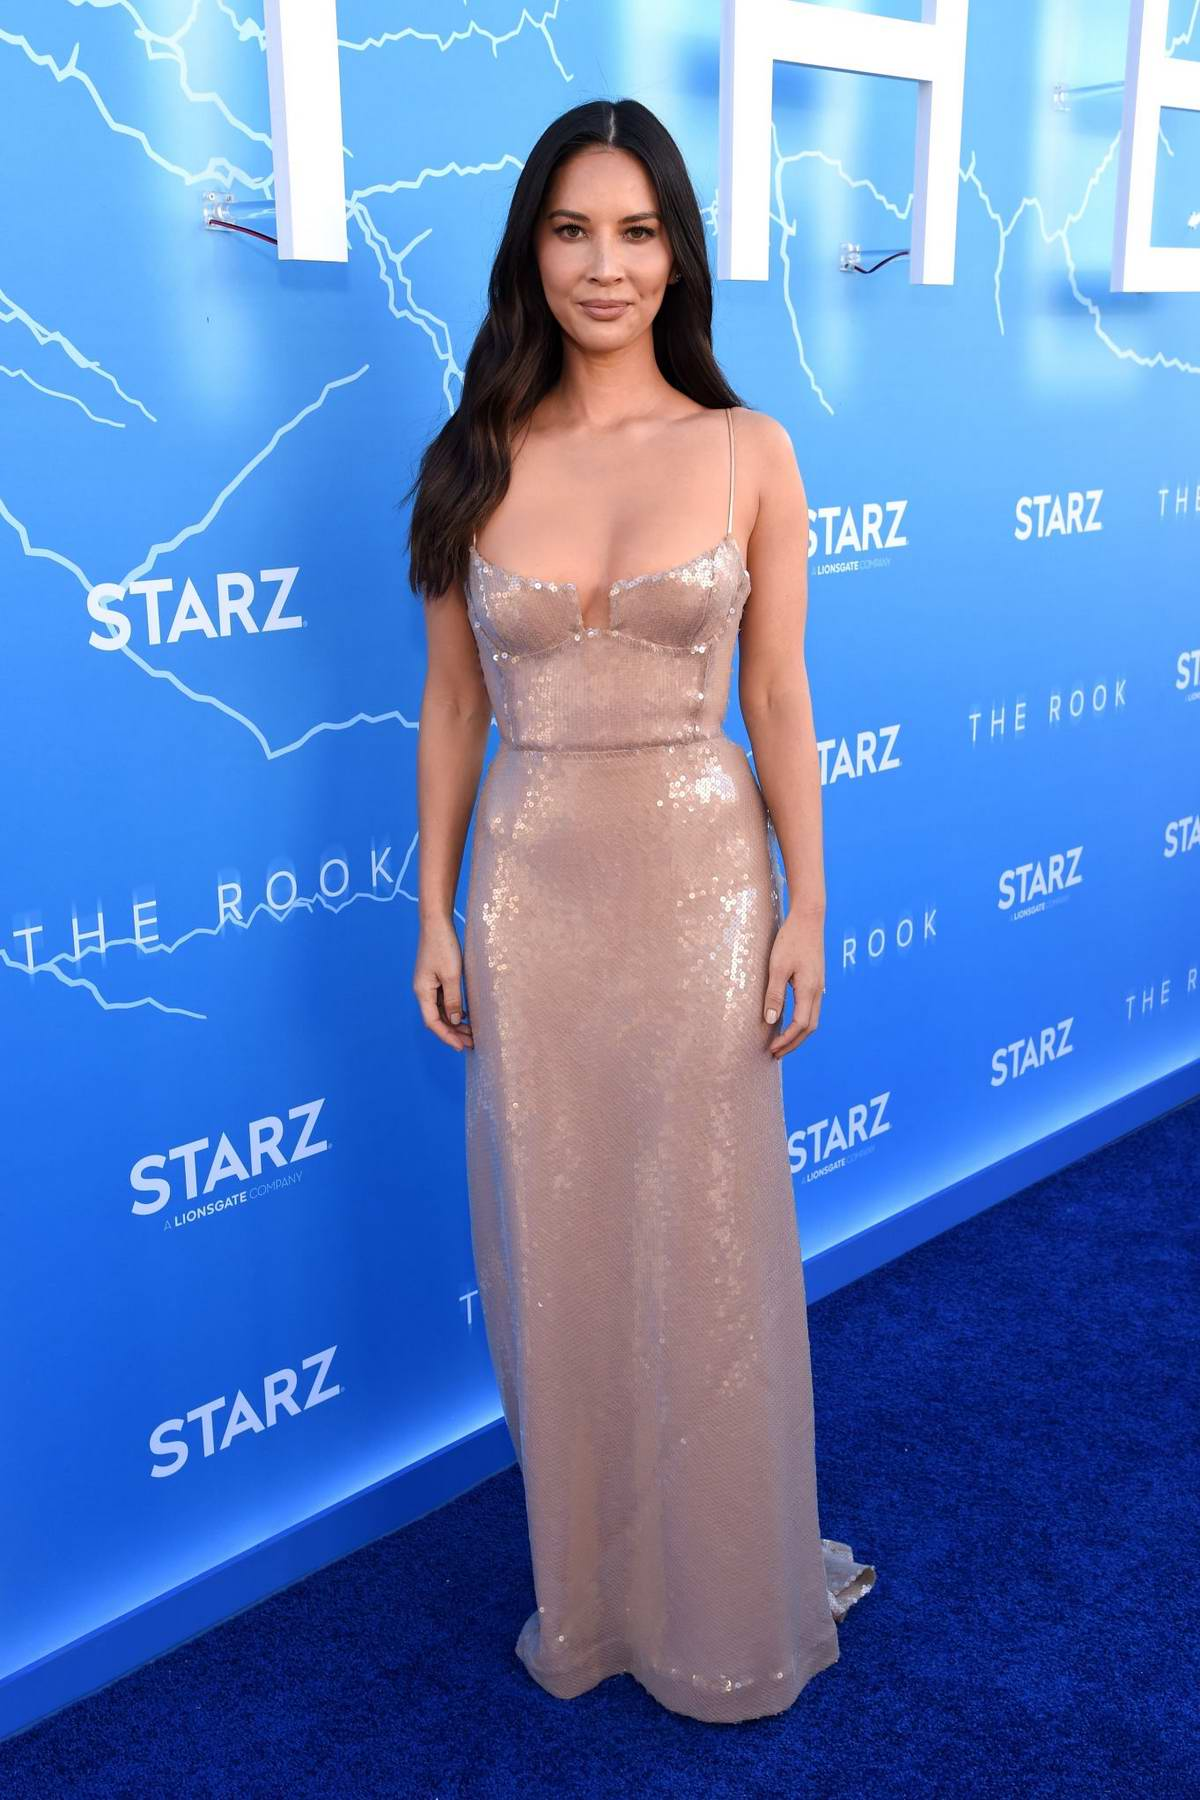 Olivia Munn attends the Premiere of Starz's 'The Rook' at The Getty Museum in Los Angeles